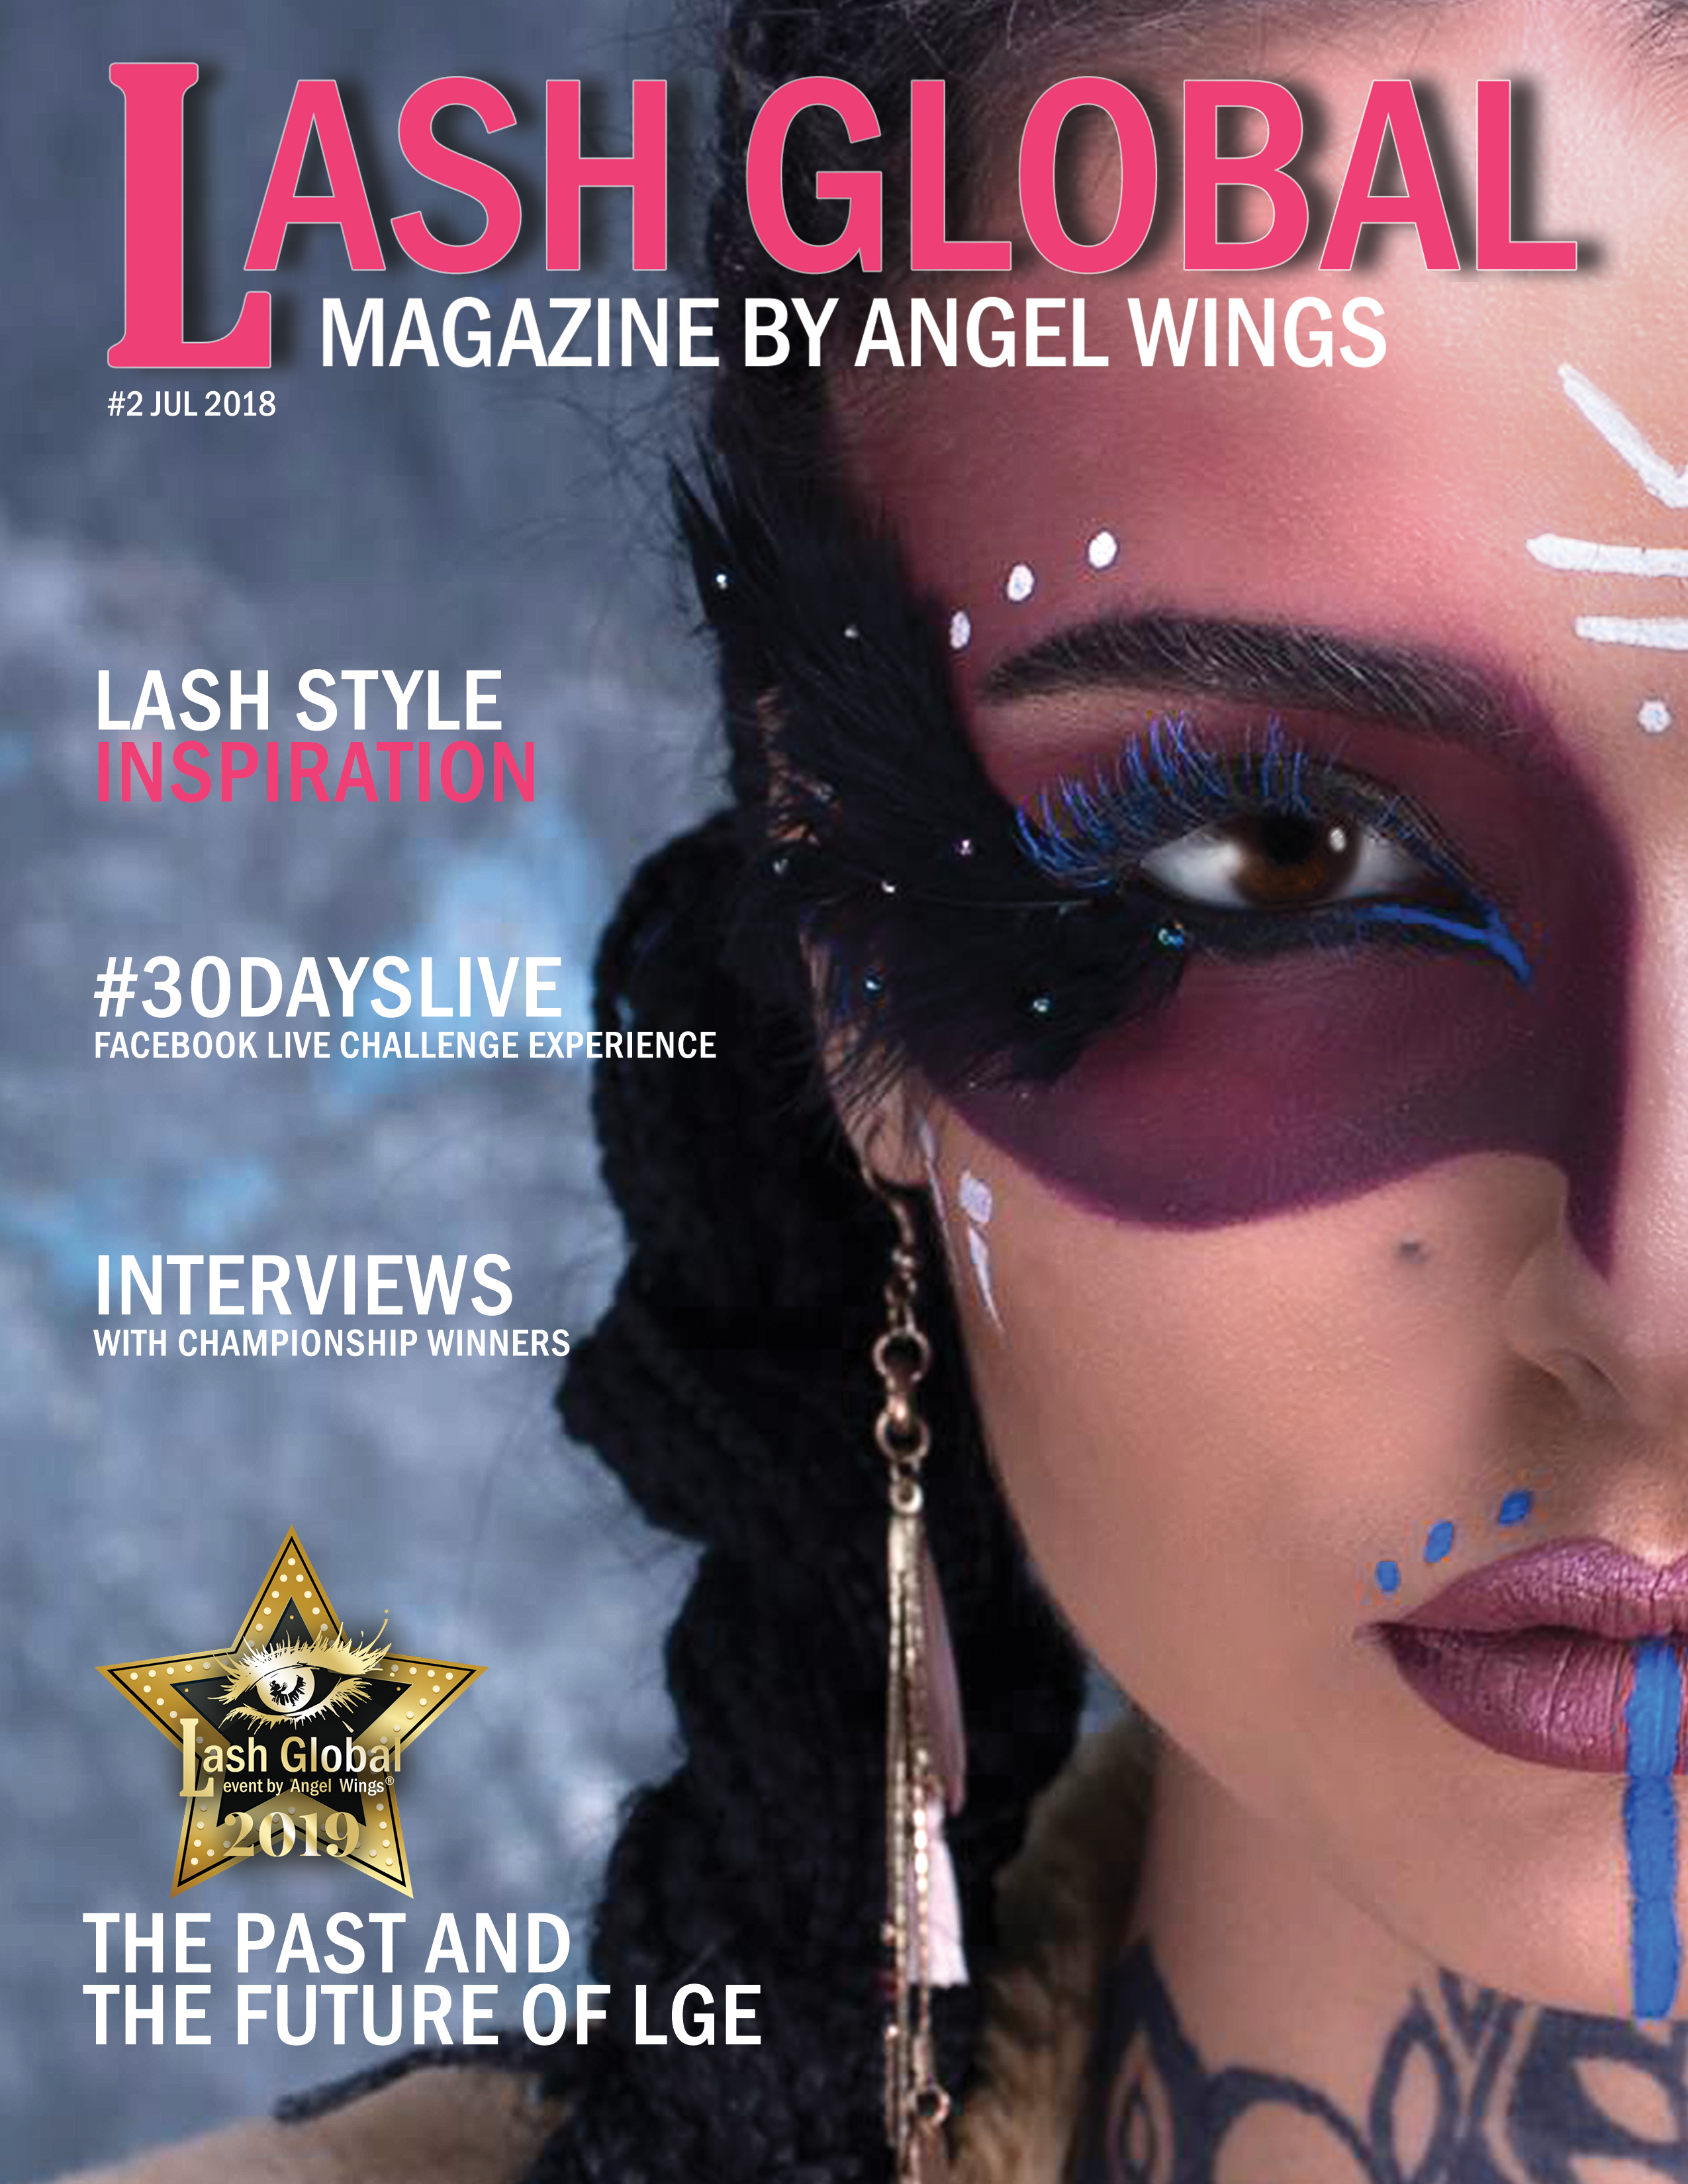 Lash Global Magazine